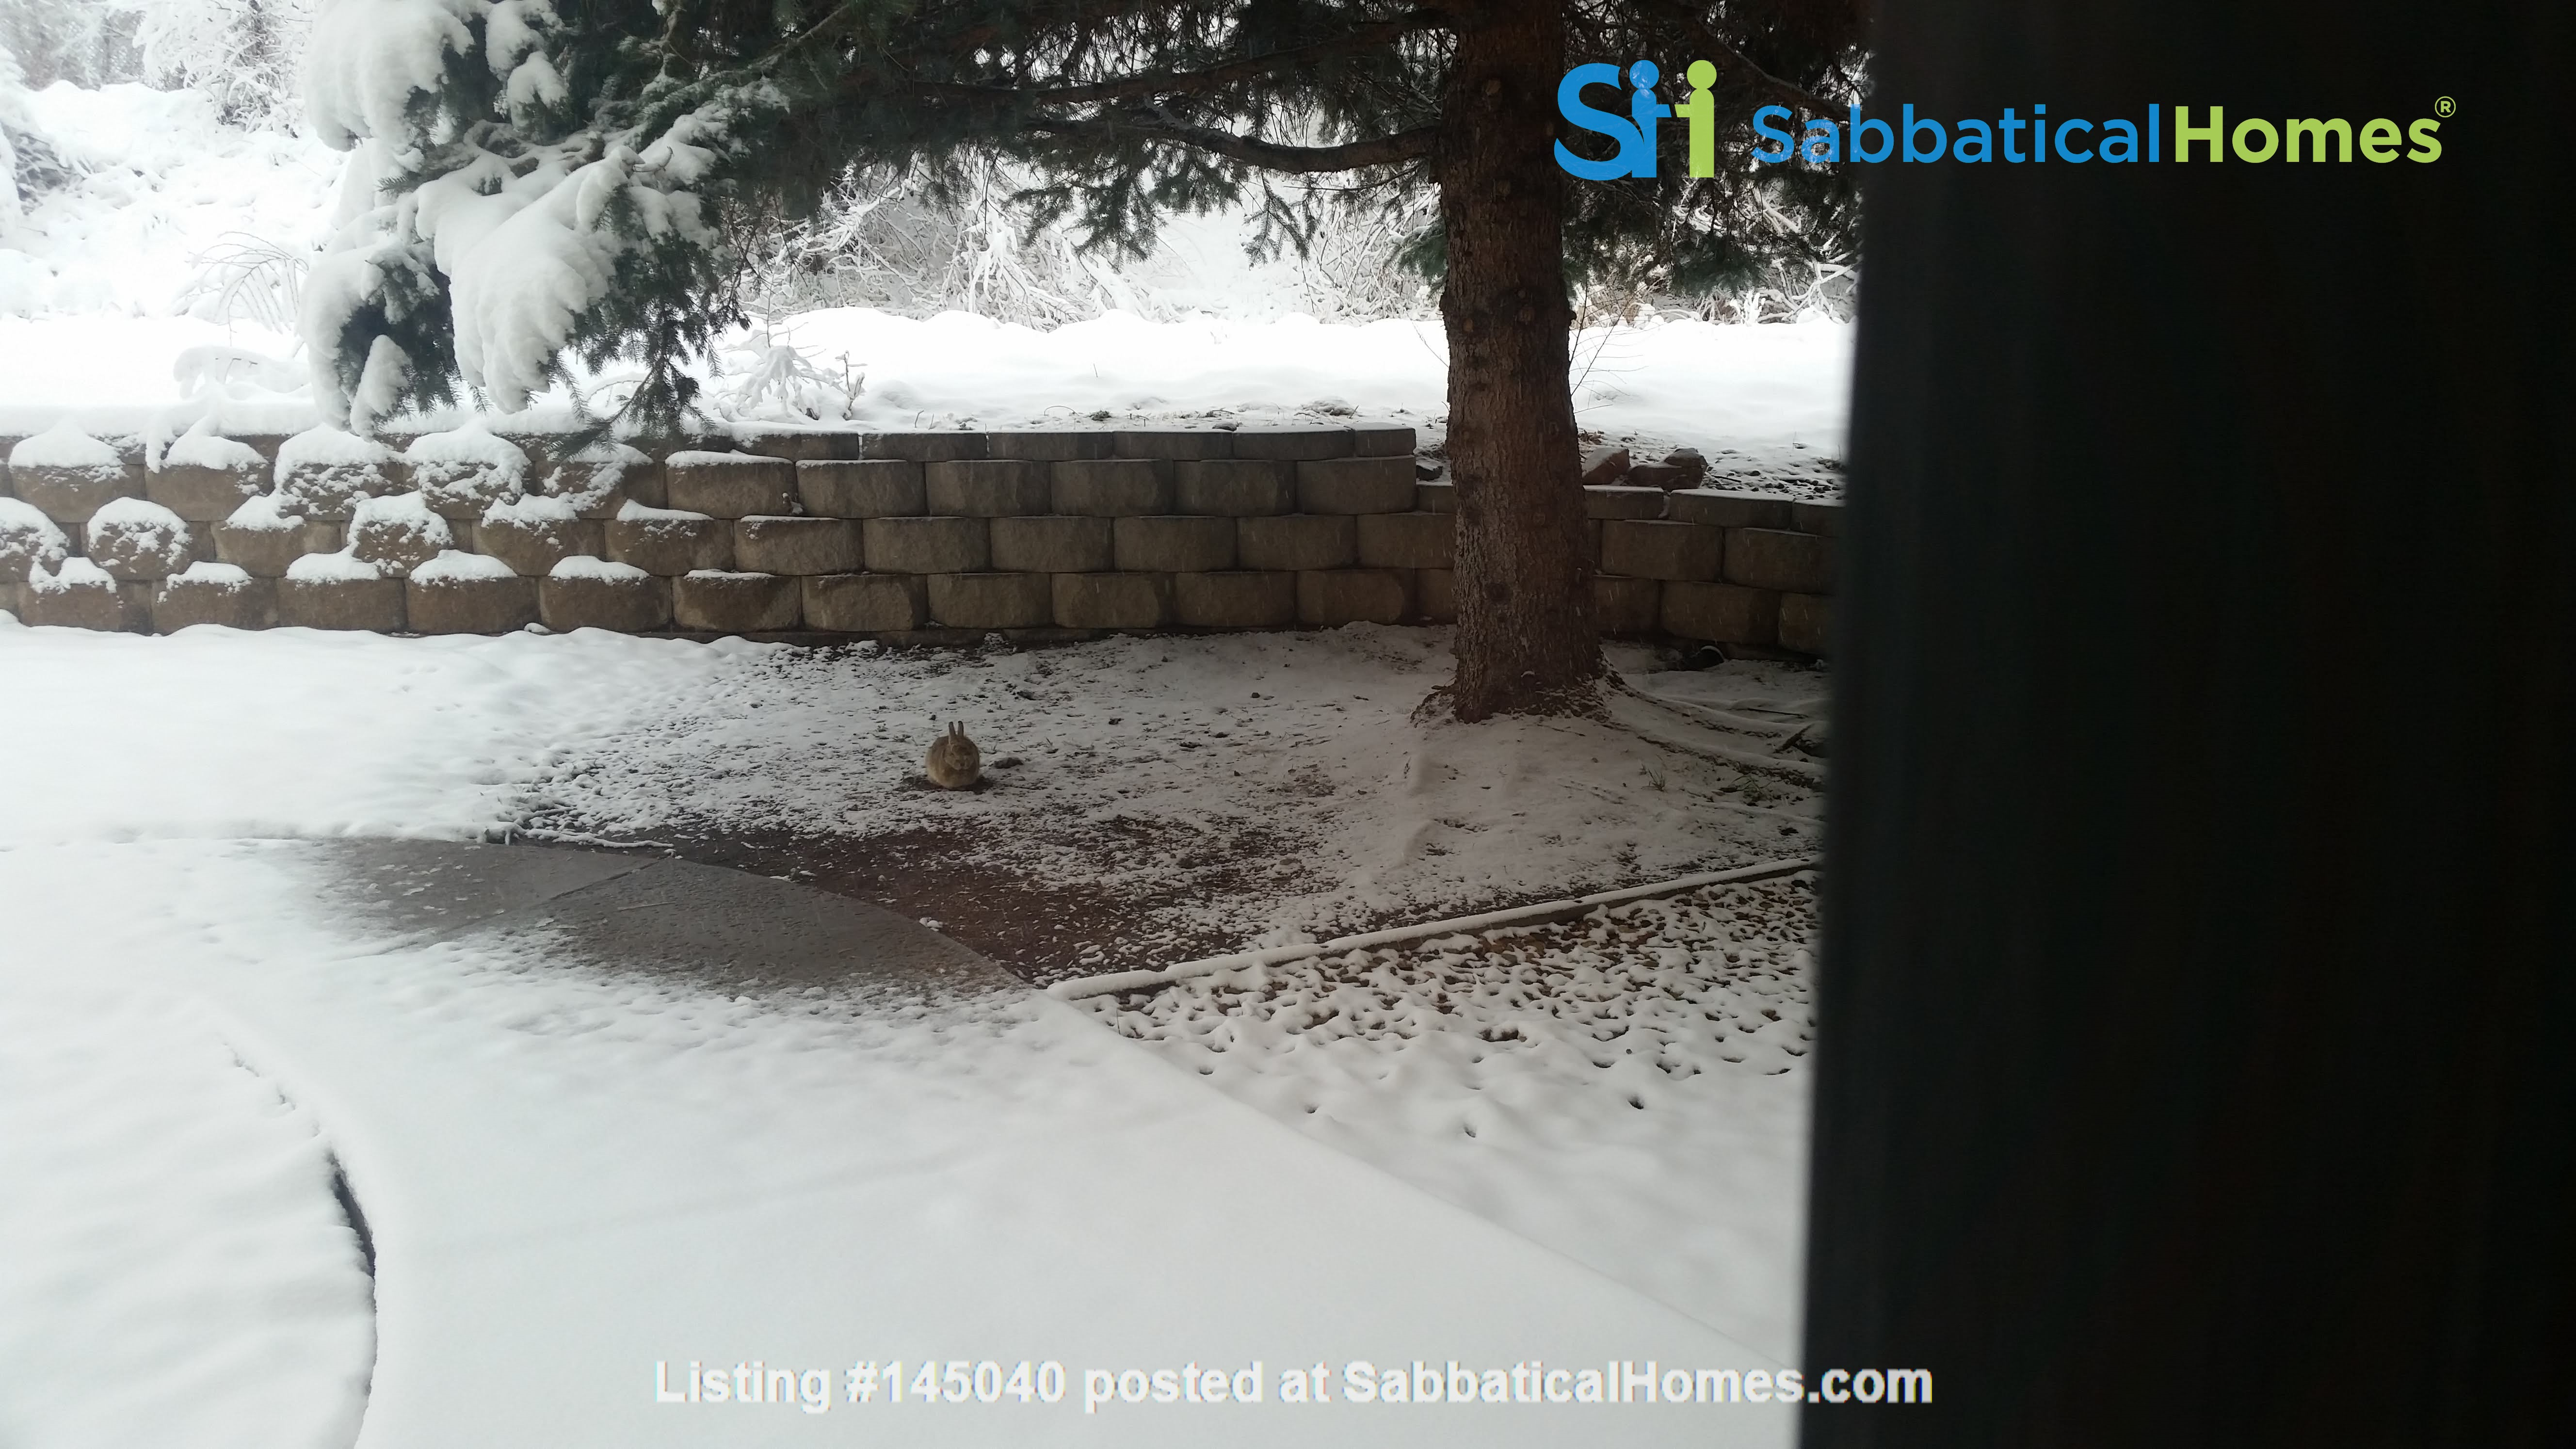 Hiking and biking paradise in beautiful Golden, Colorado - Spring 2022 swap Home Exchange in Golden 8